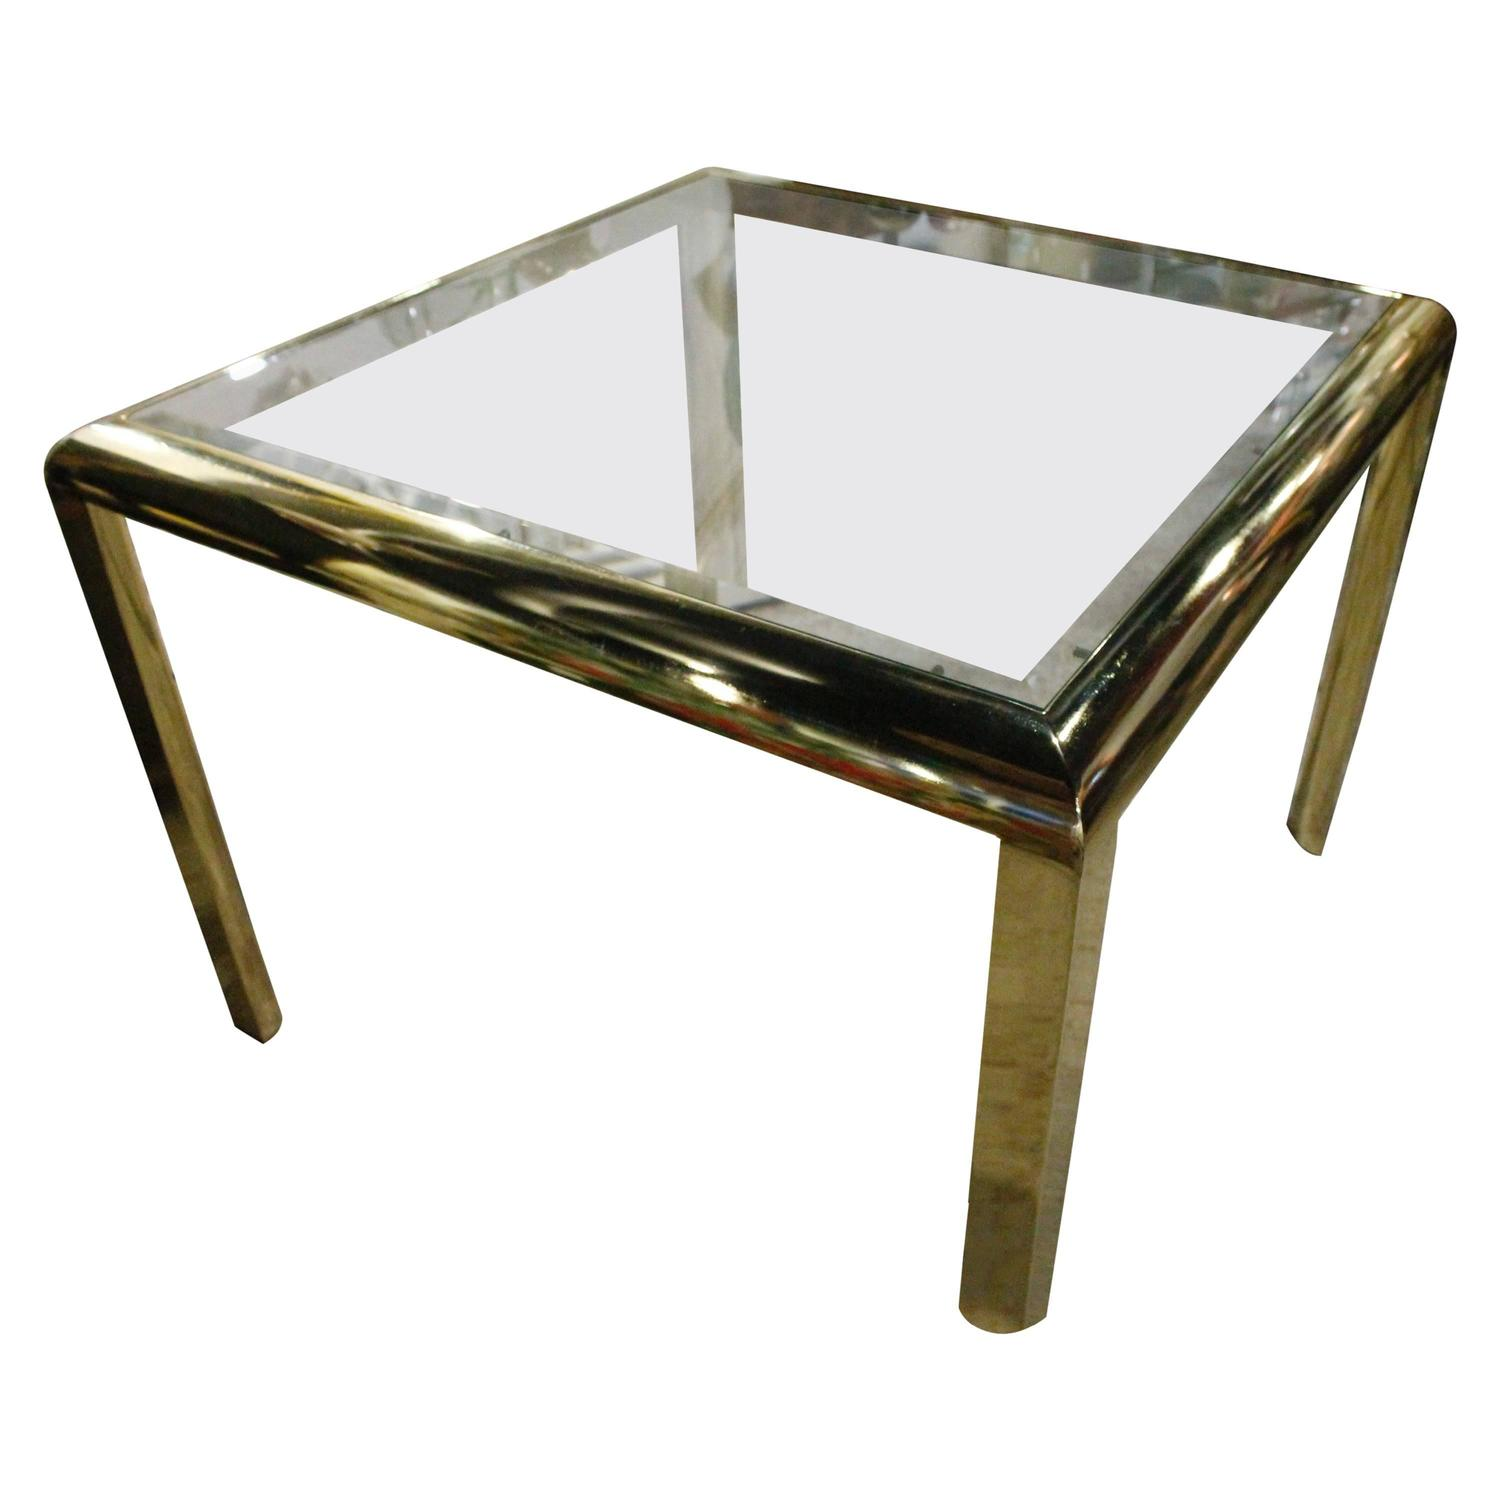 DIA Brass Dining Game Table Vintage Hollywood Regency Design Institute